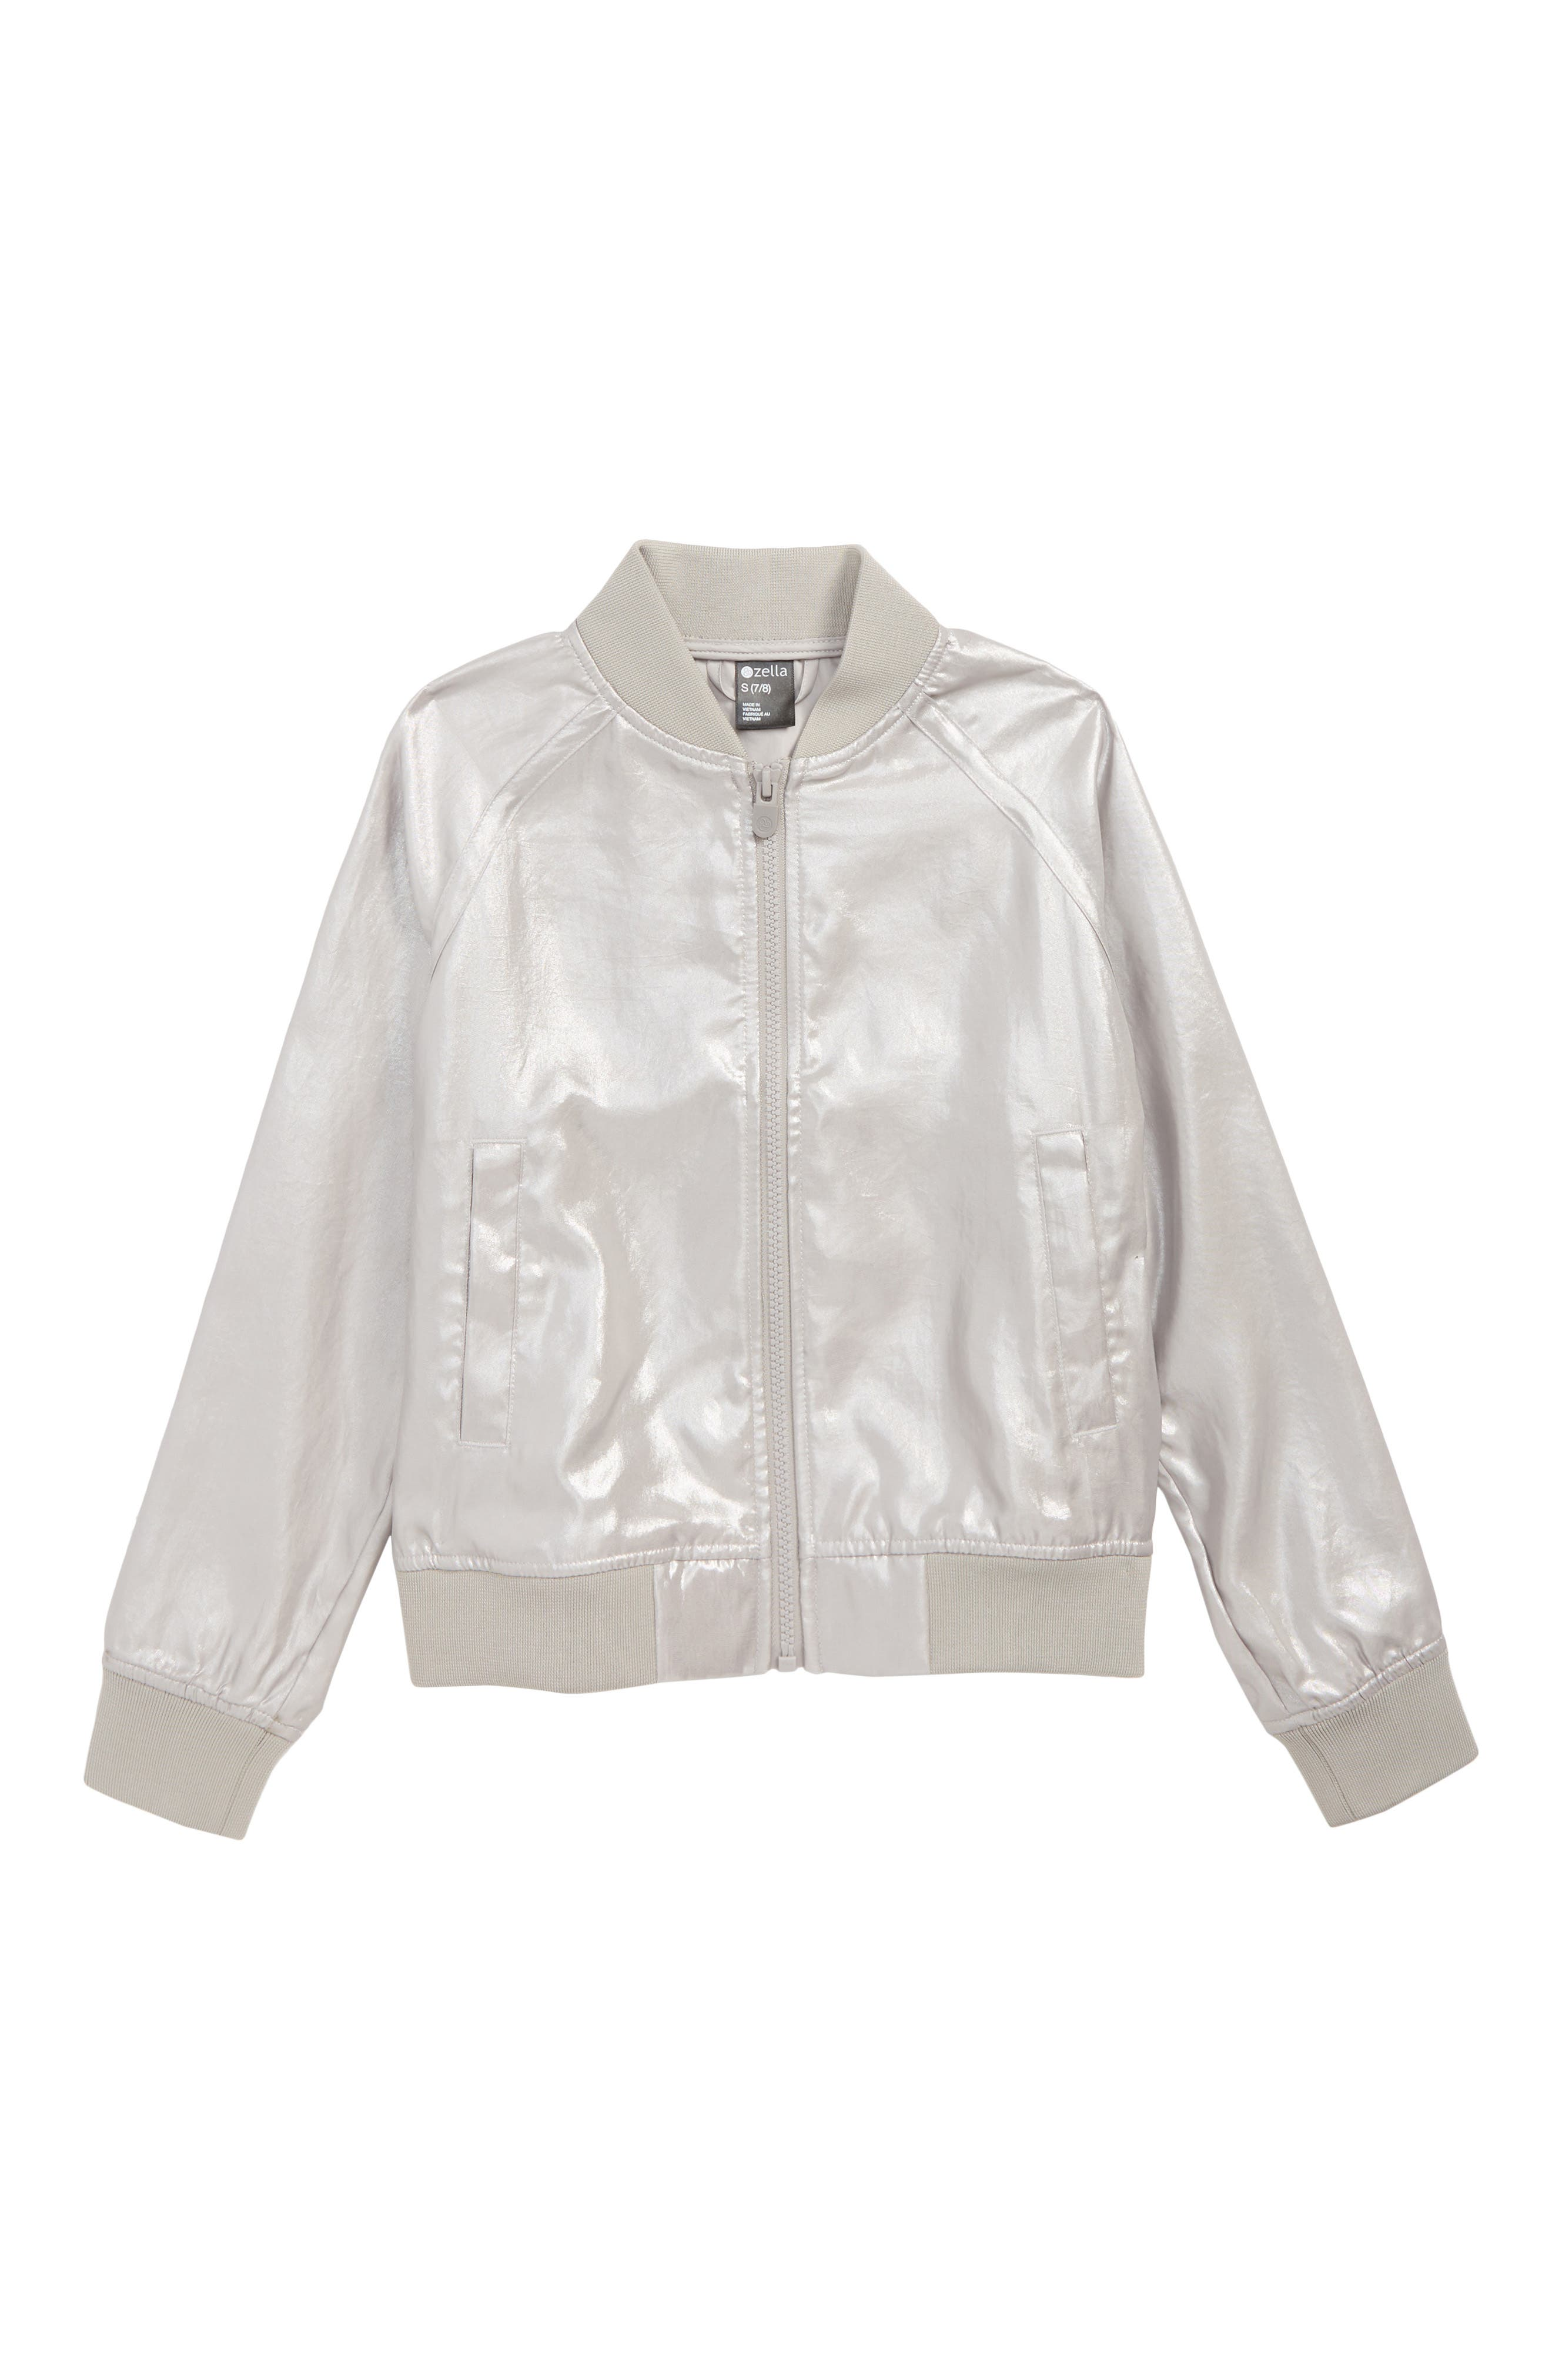 Shine Metallic Bomber Jacket,                         Main,                         color, SILVER METALLIC